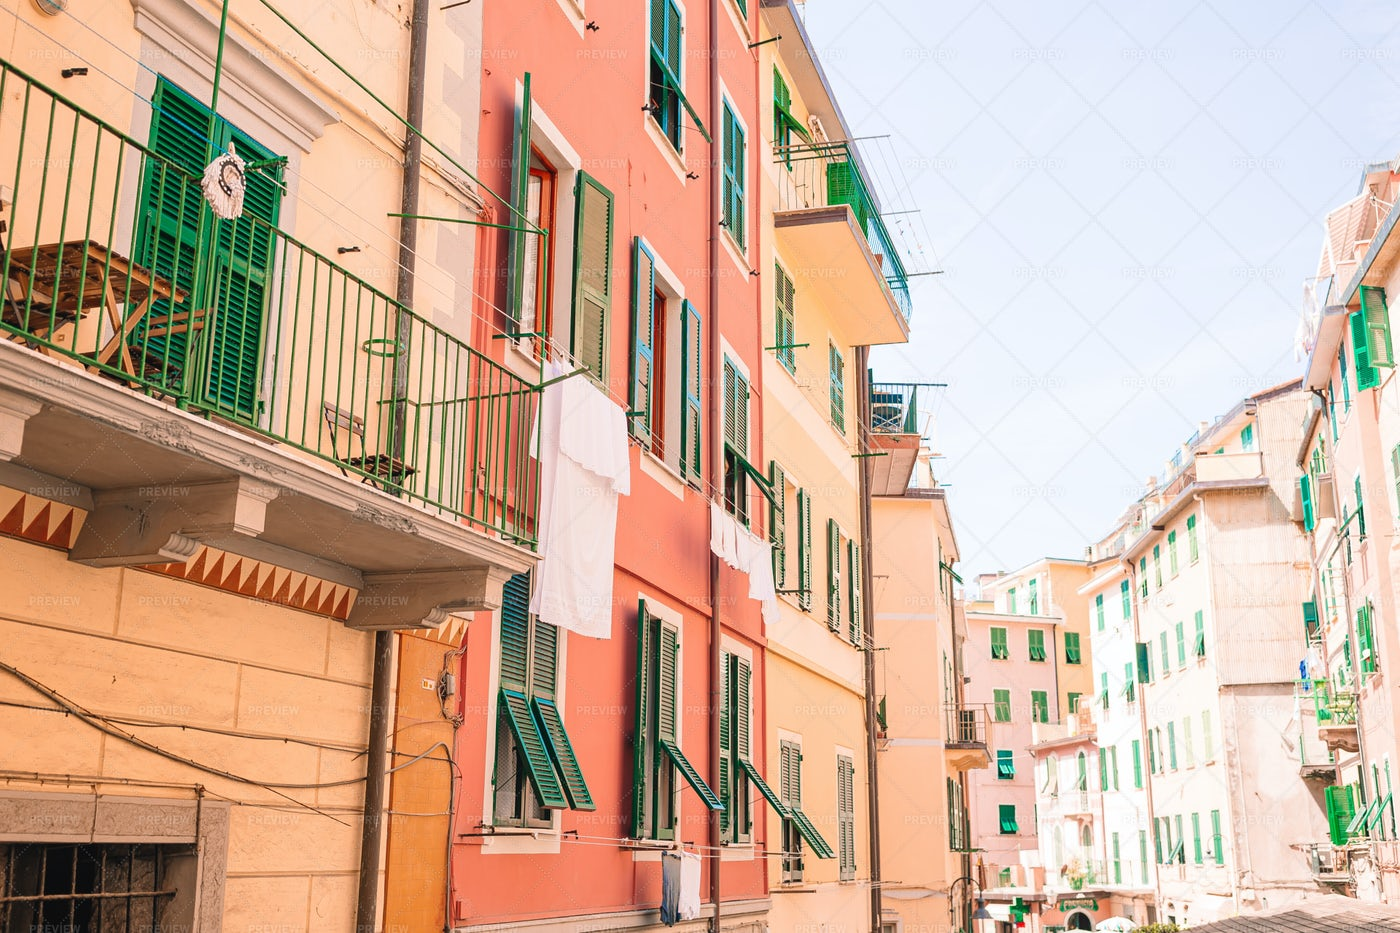 Houses In The Small Town Of Liguria: Stock Photos